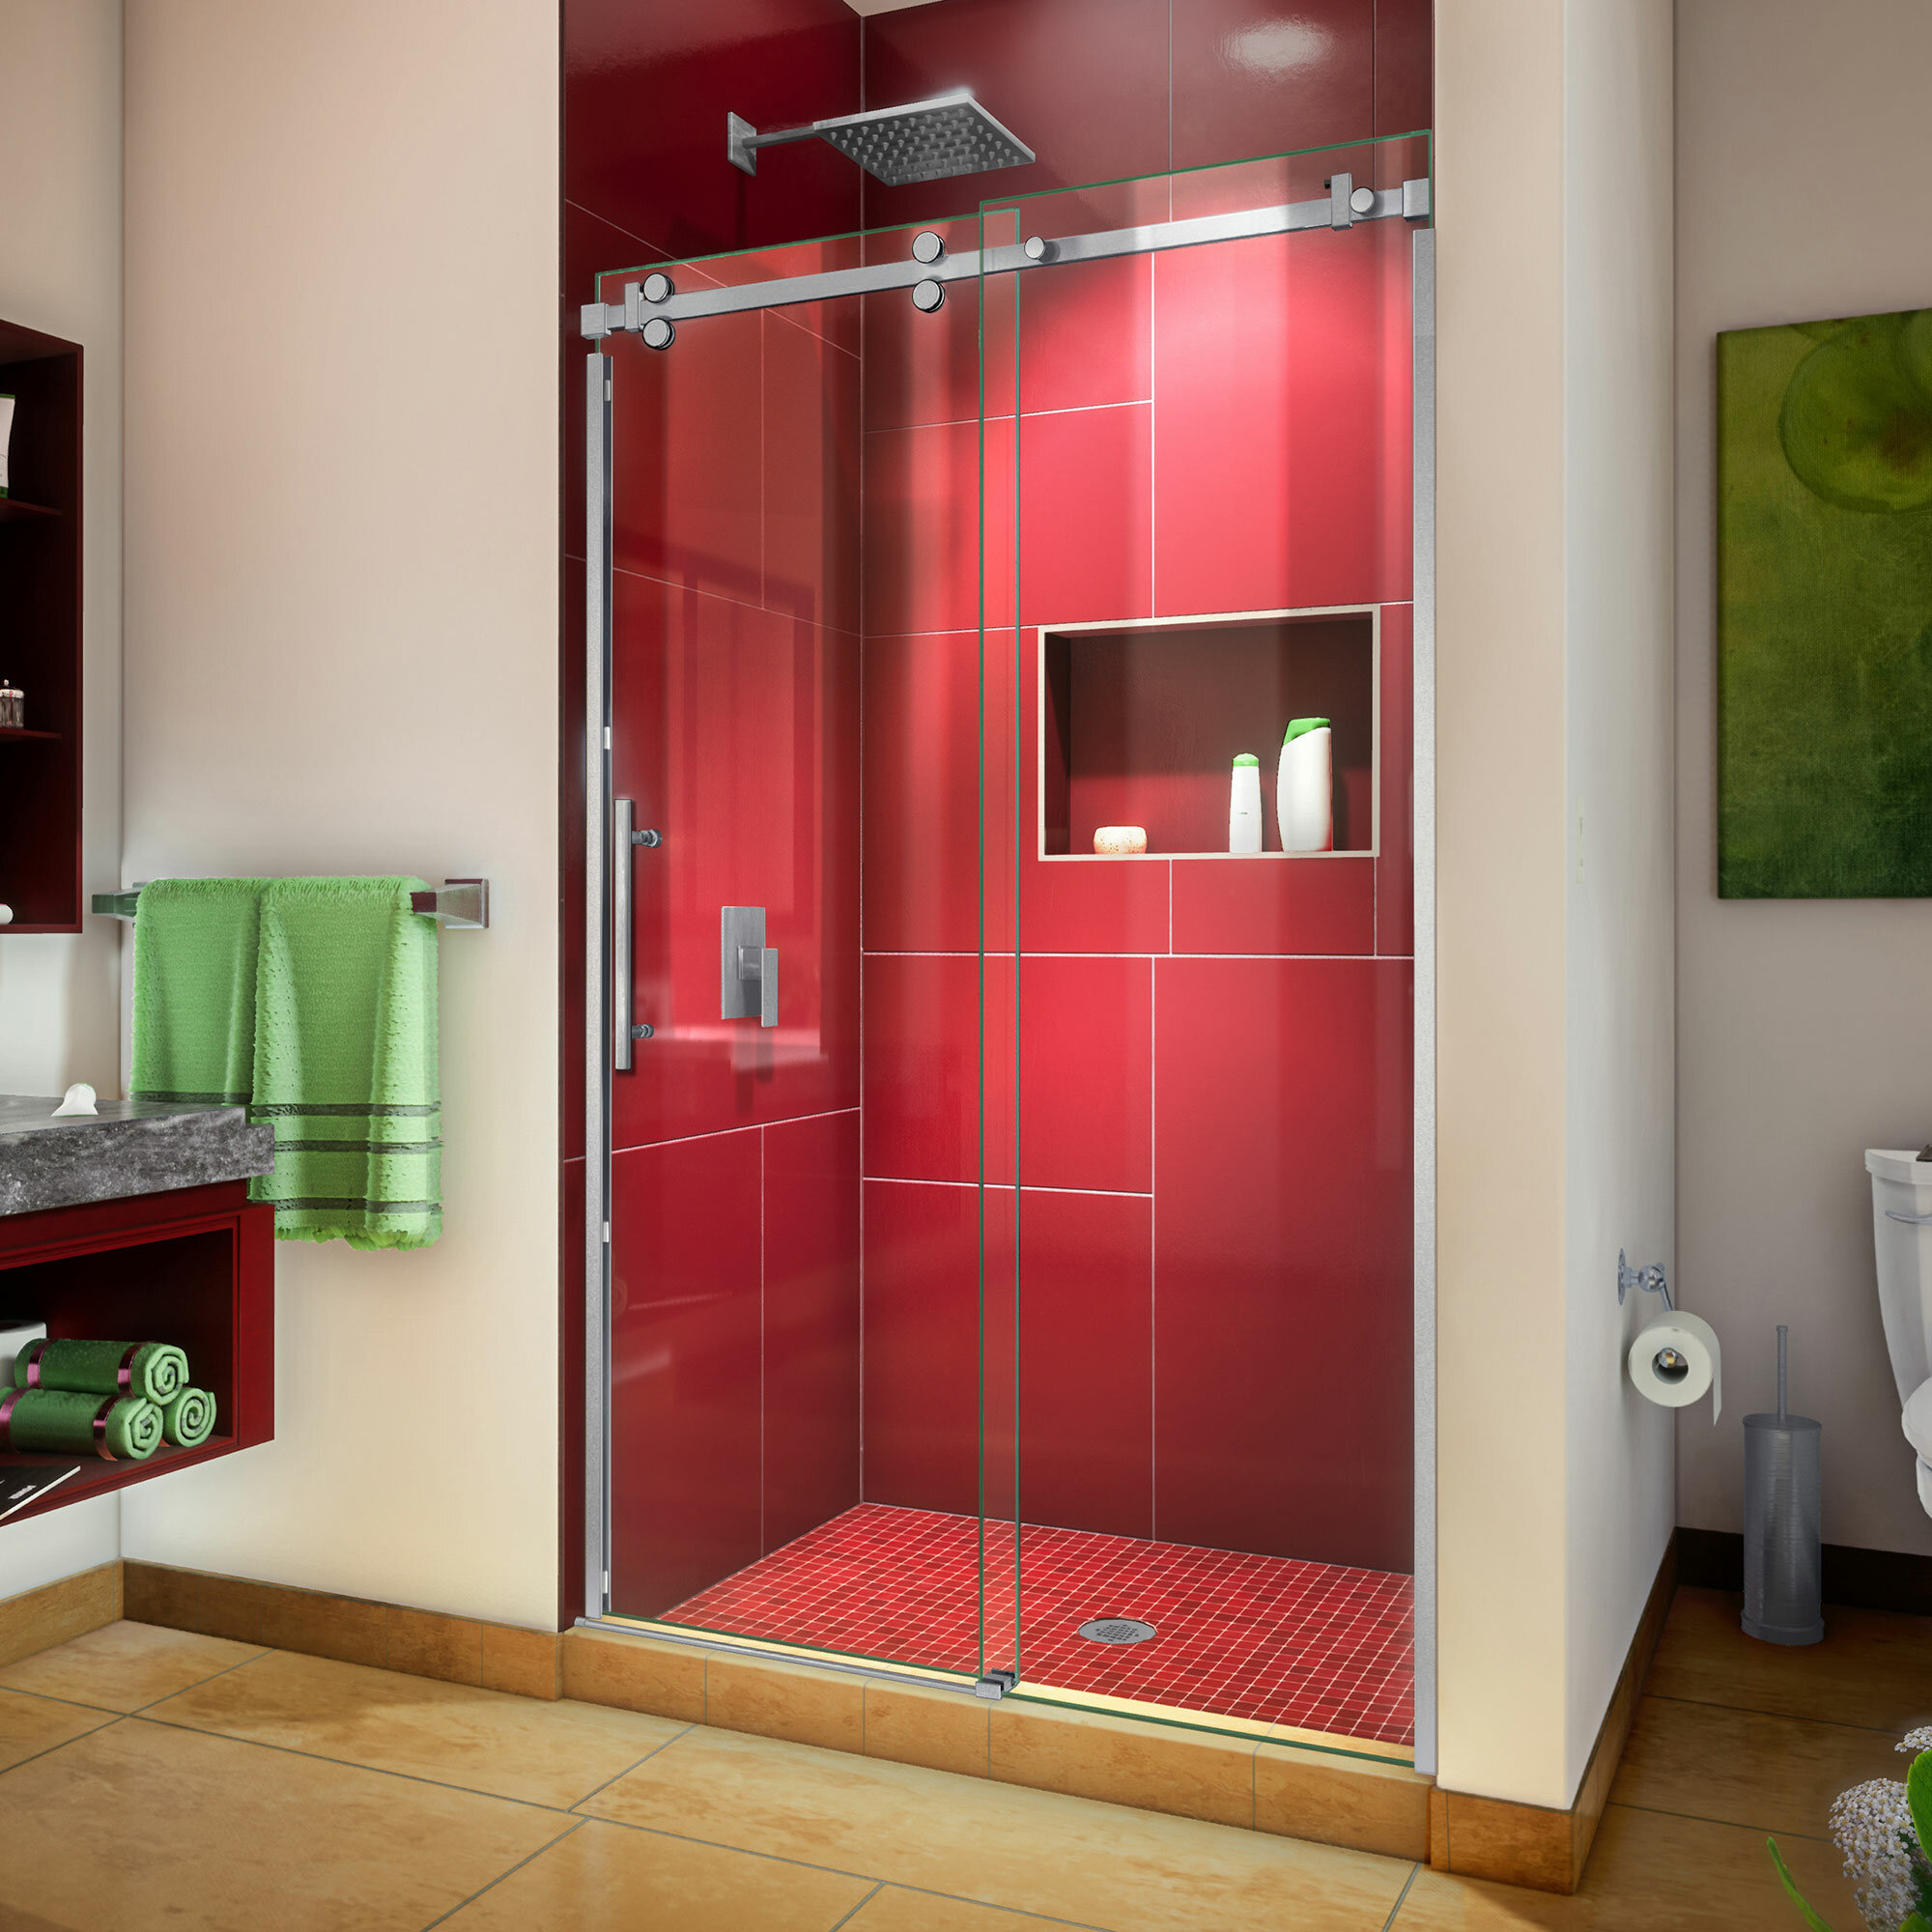 Enigma Sky 48 X 76 Sliding Frameless Shower Door With Clear Max Technology